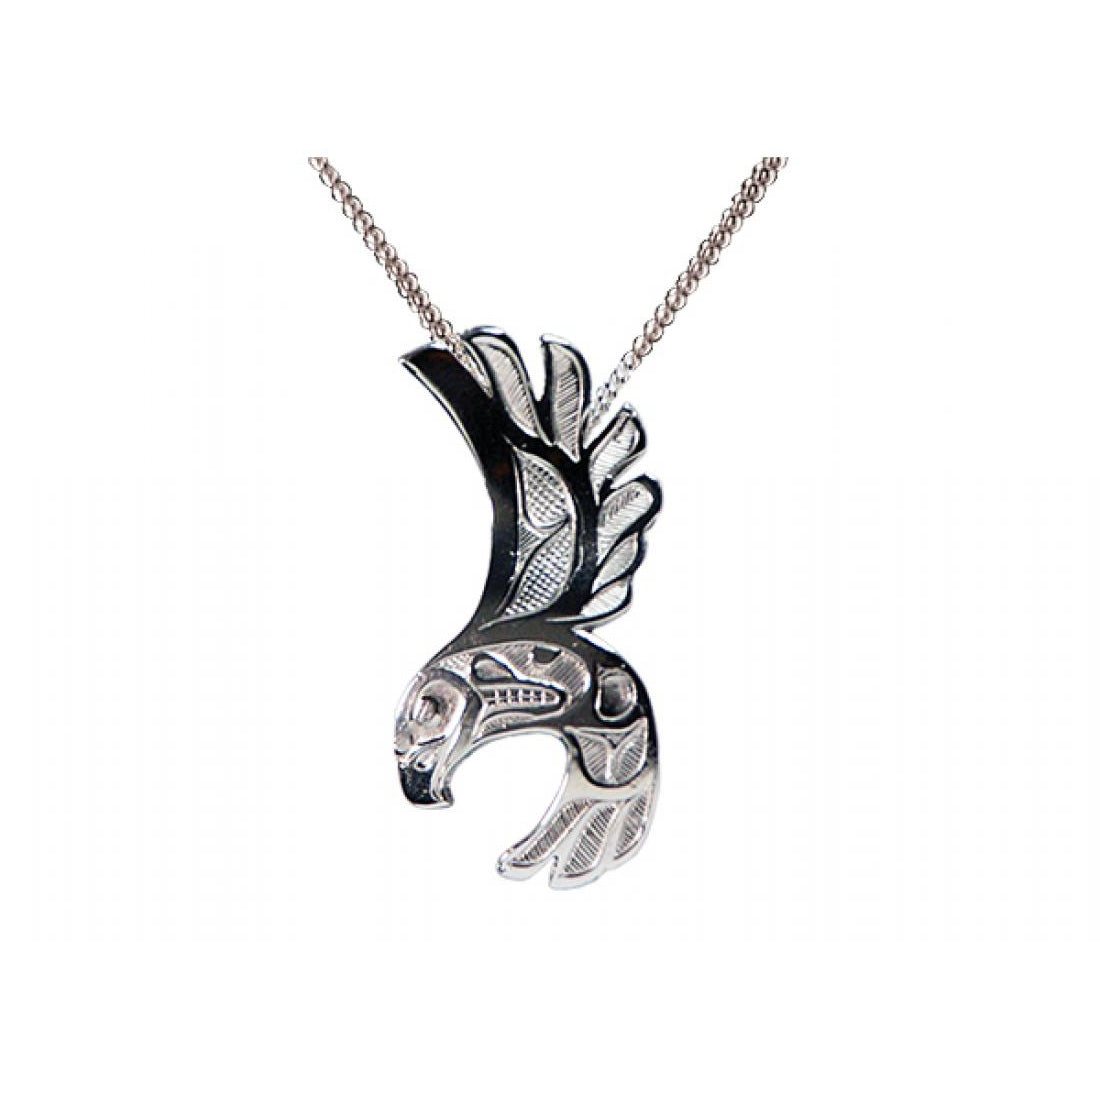 "Silver Pendant Neckalce - "" Eagle Free Flight"" by Bill Helin"